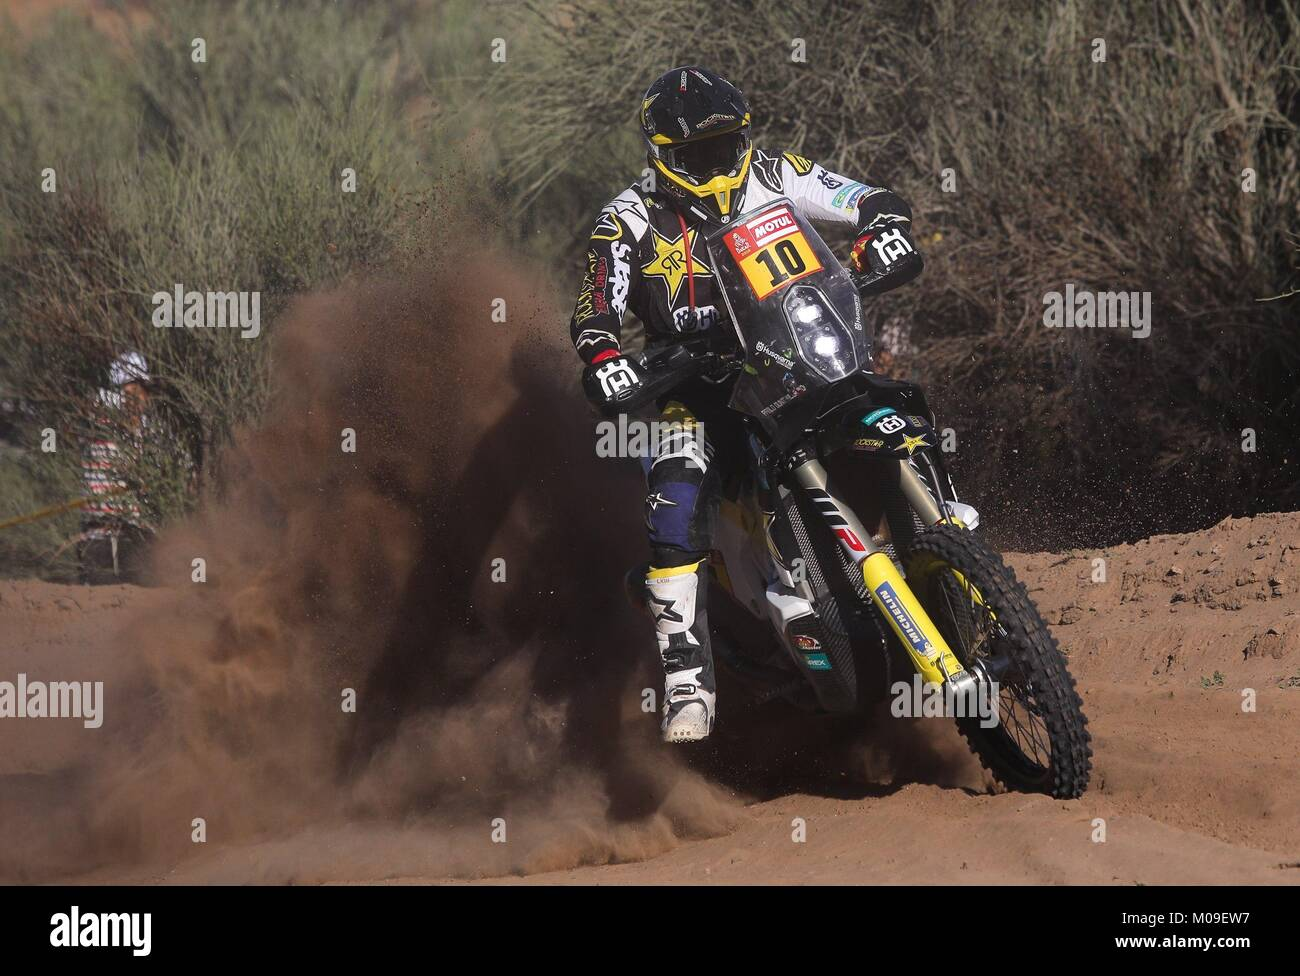 Pozuelo, Argentina. 19th Jan, 2018. Chilean Pablo Quintanilla of Husqvarna competes during the 13th stage of the - Stock Image